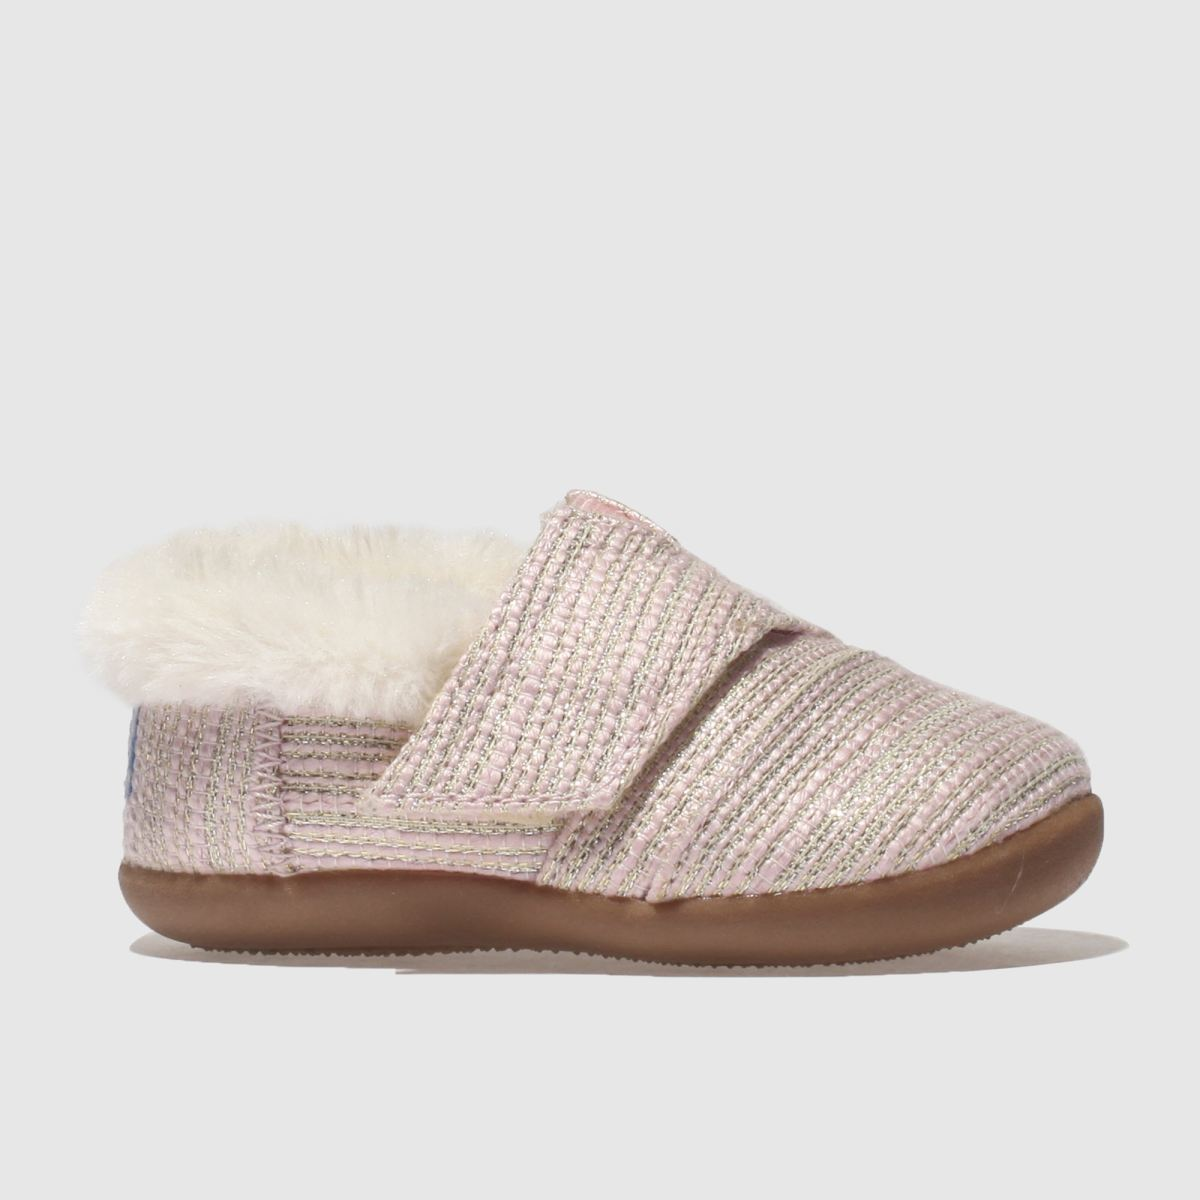 toms pale pink house slipper Girls Toddler Shoes